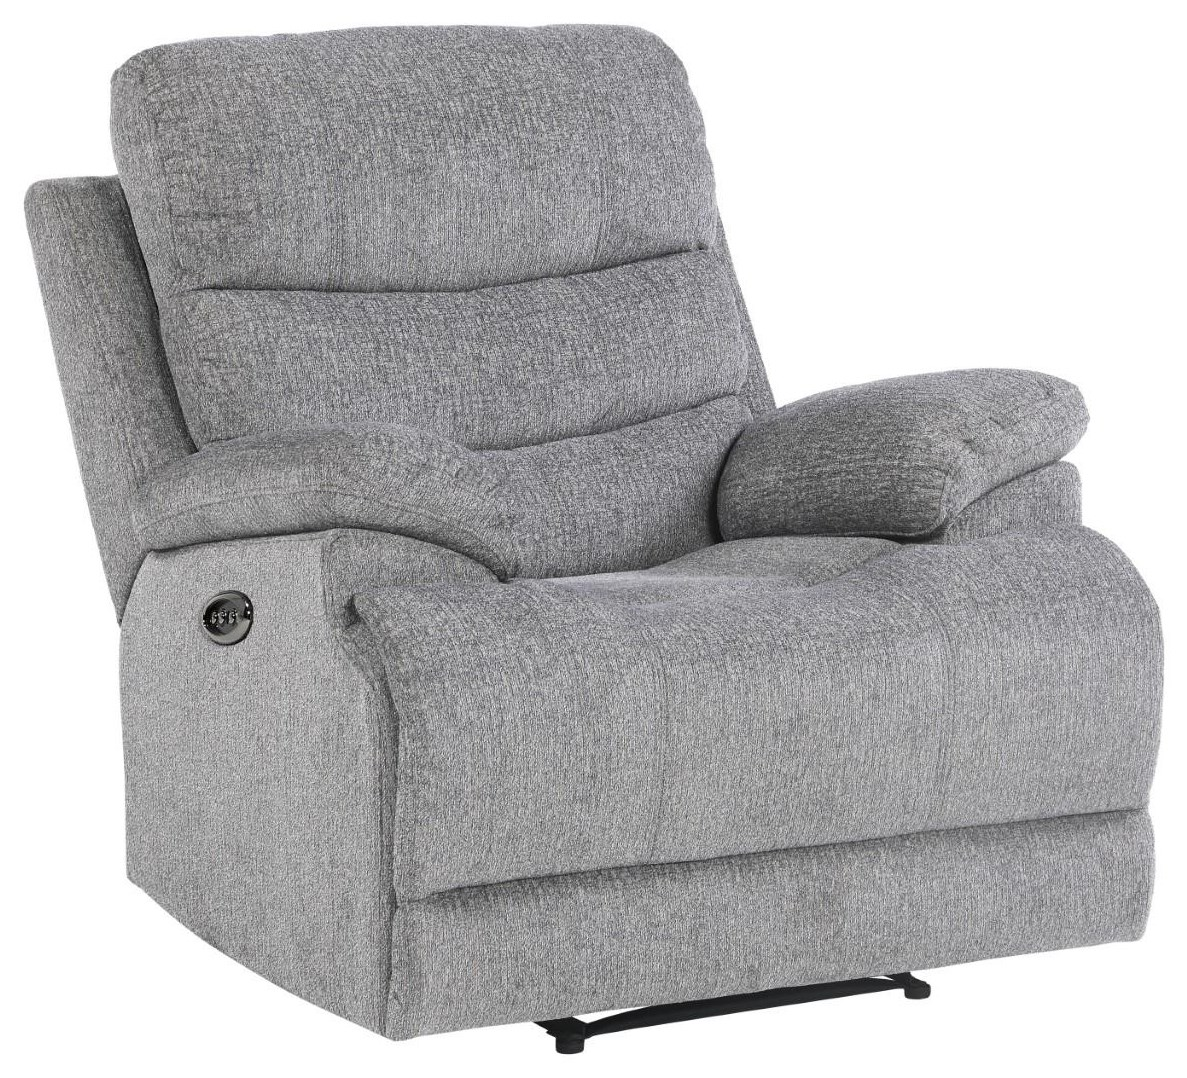 Kelso Power Recliner w/ Power Headrest by Home Style at Walker's Furniture